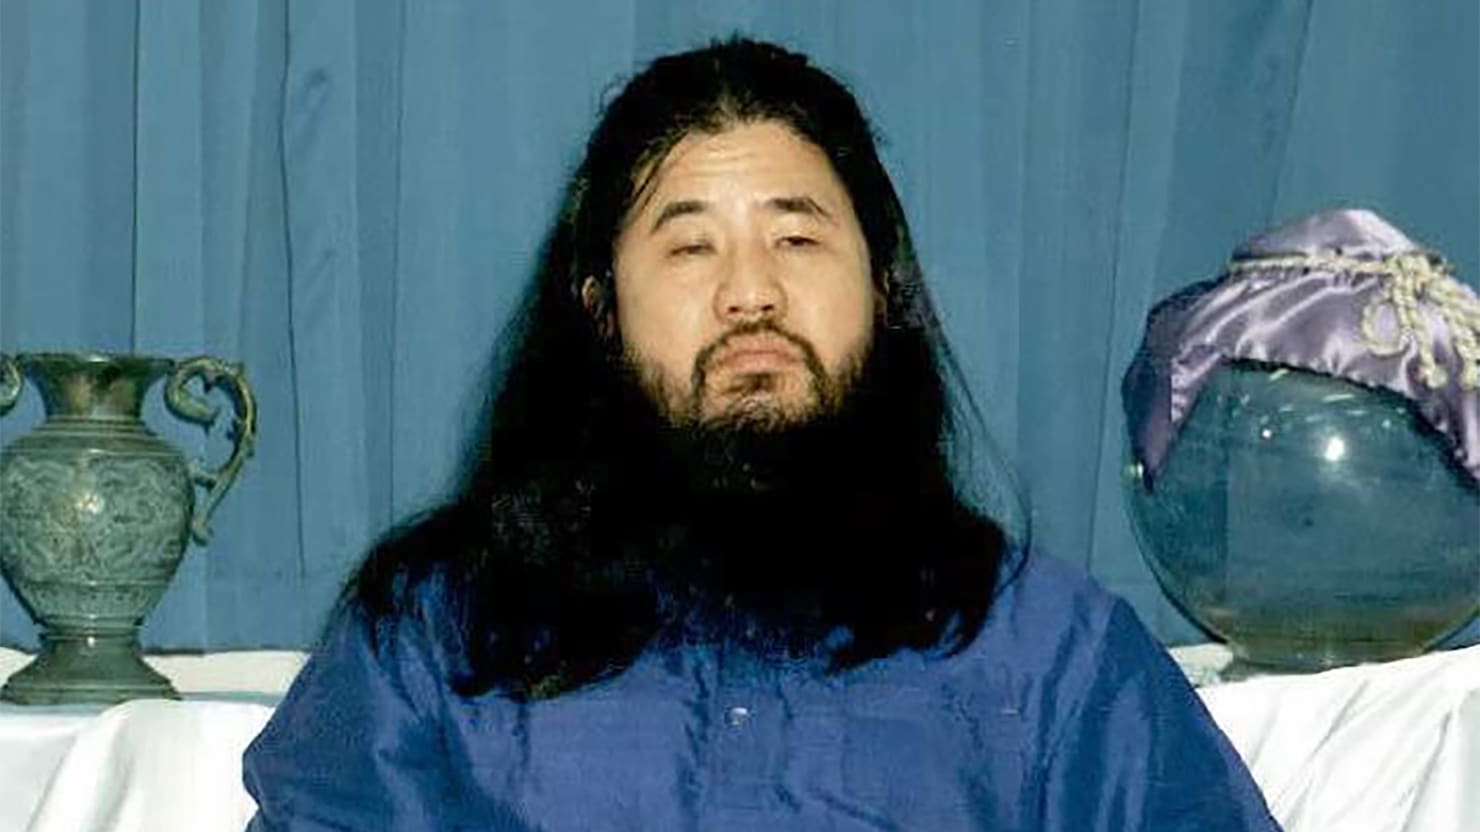 an analysis of aum shinrikyo in japan During the six years since the aum shinrikyo cult's nerve gas attack on  use  mass-casualty biological agents has received scant analytical attention  of the  japanese authorities, aum was unable to achieve its objectives.